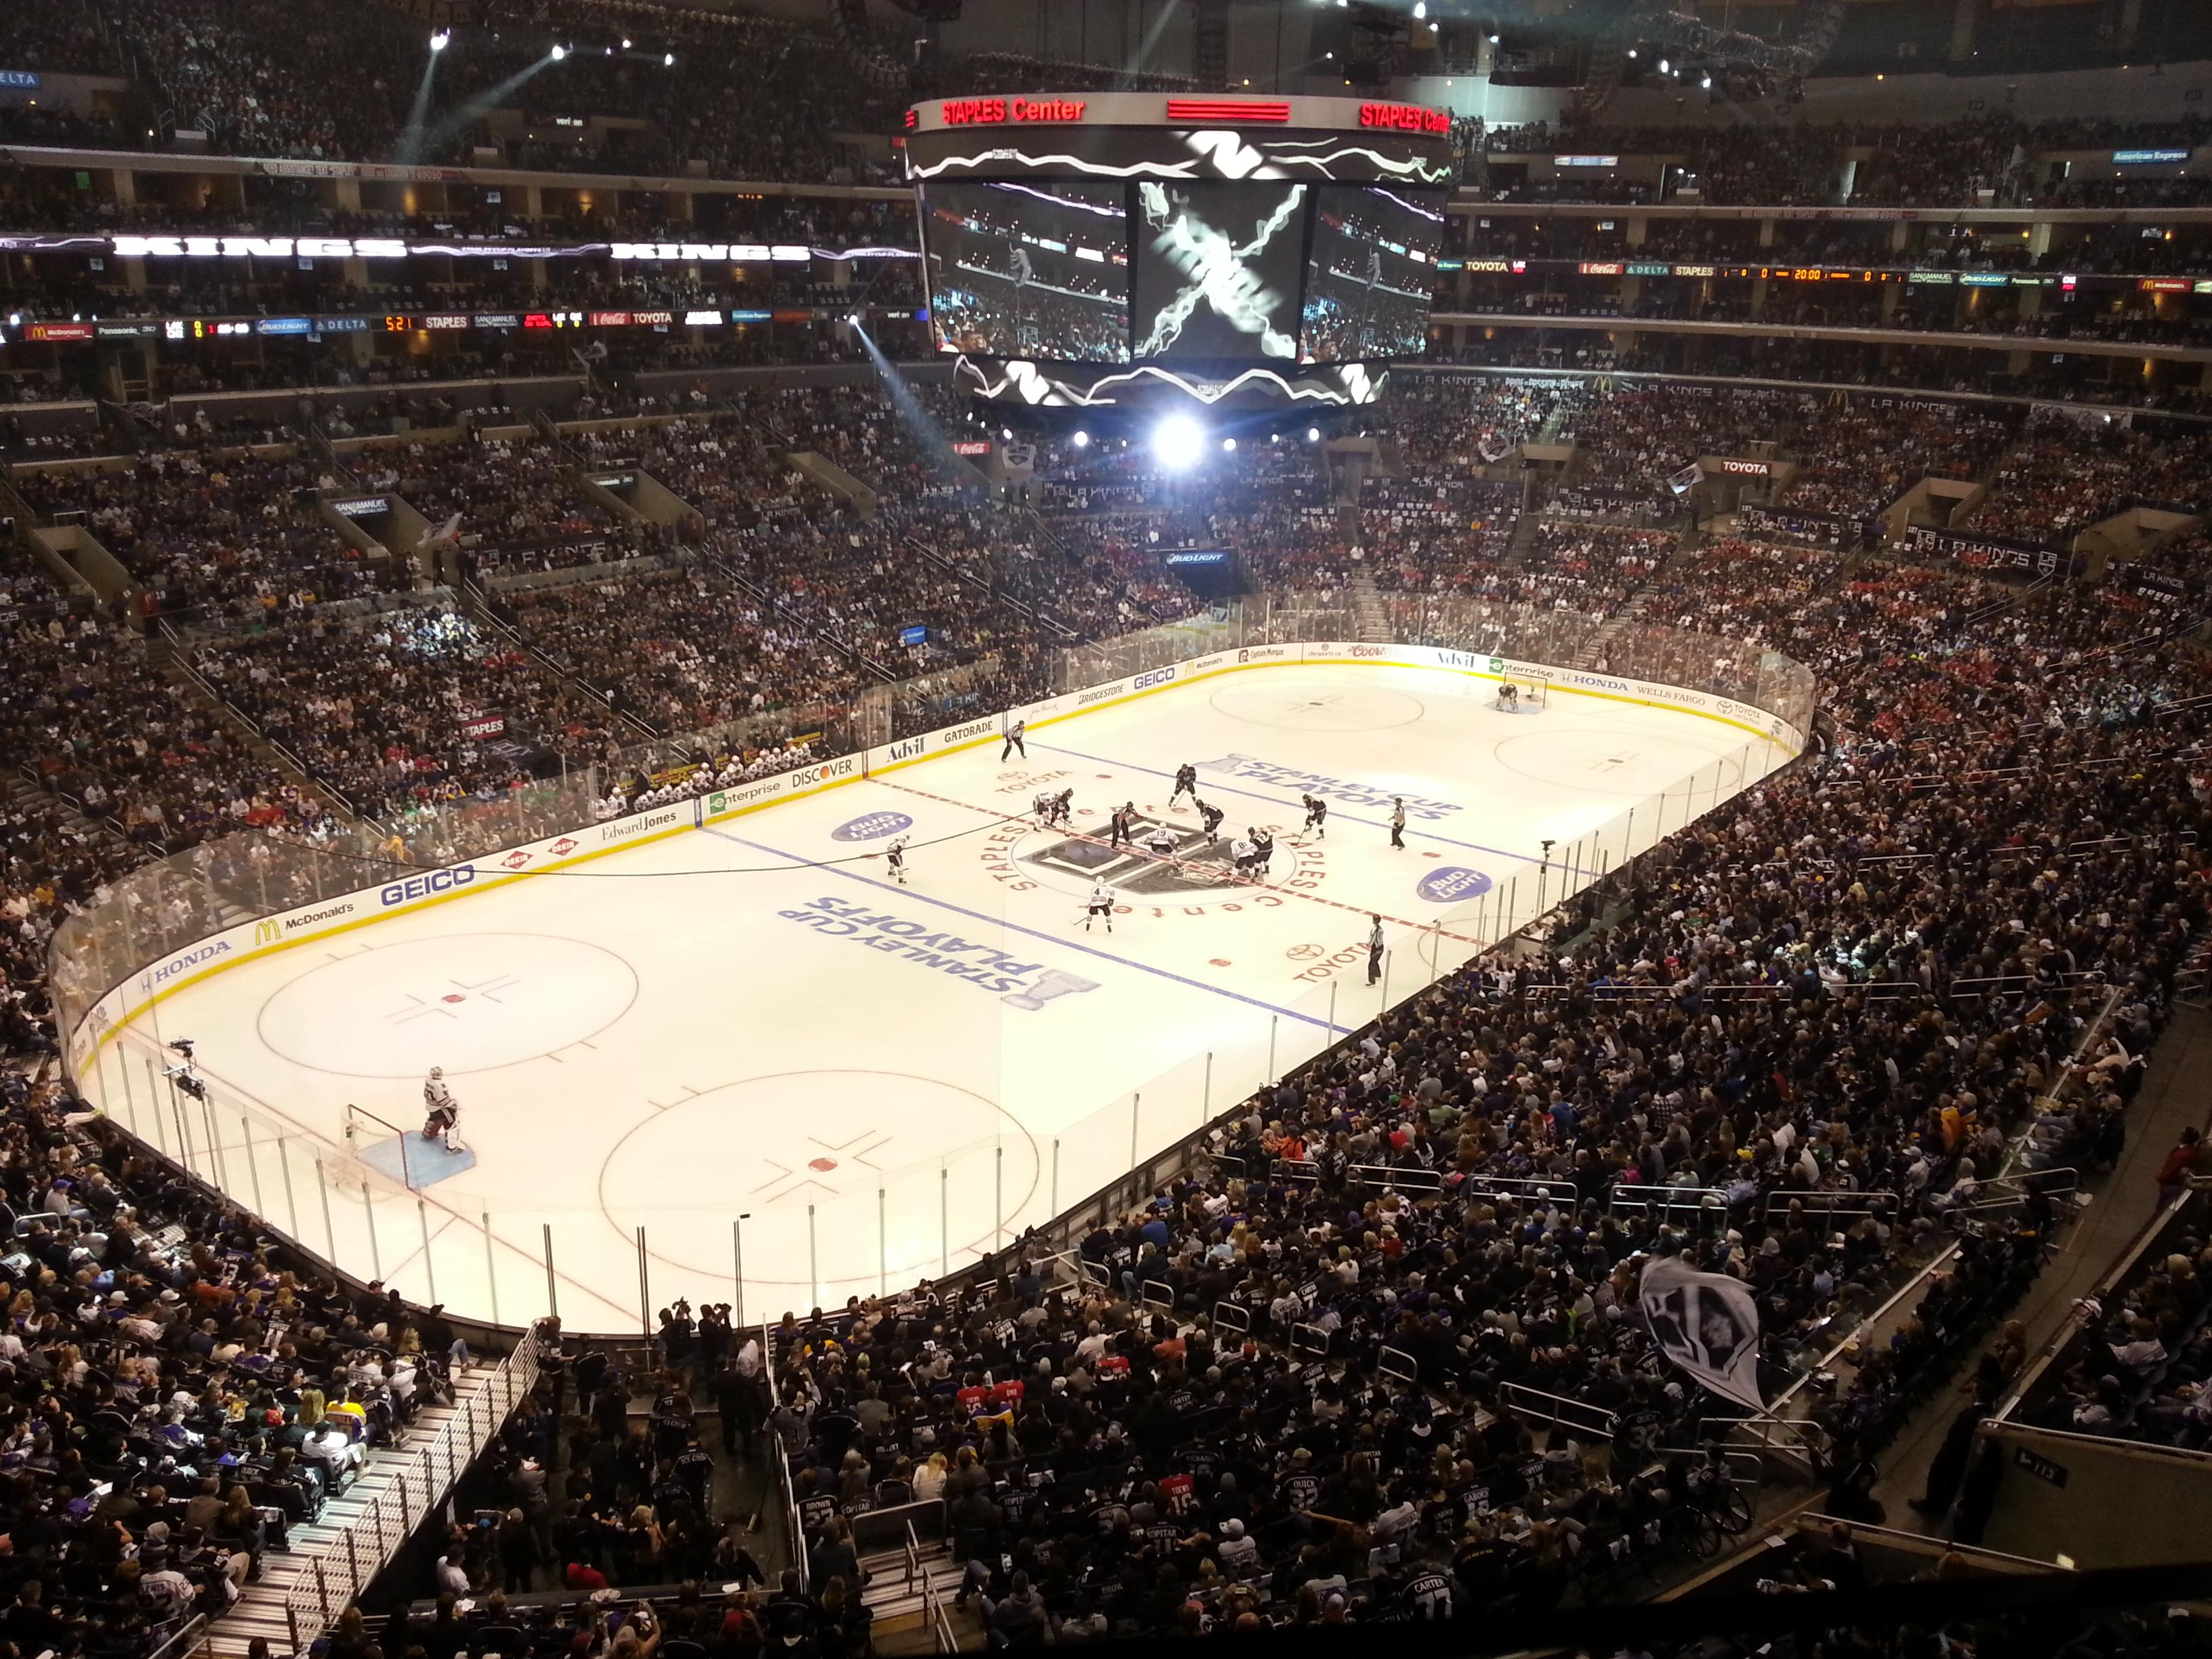 Staples Center Section Suite E8 Row 1 Seat 11